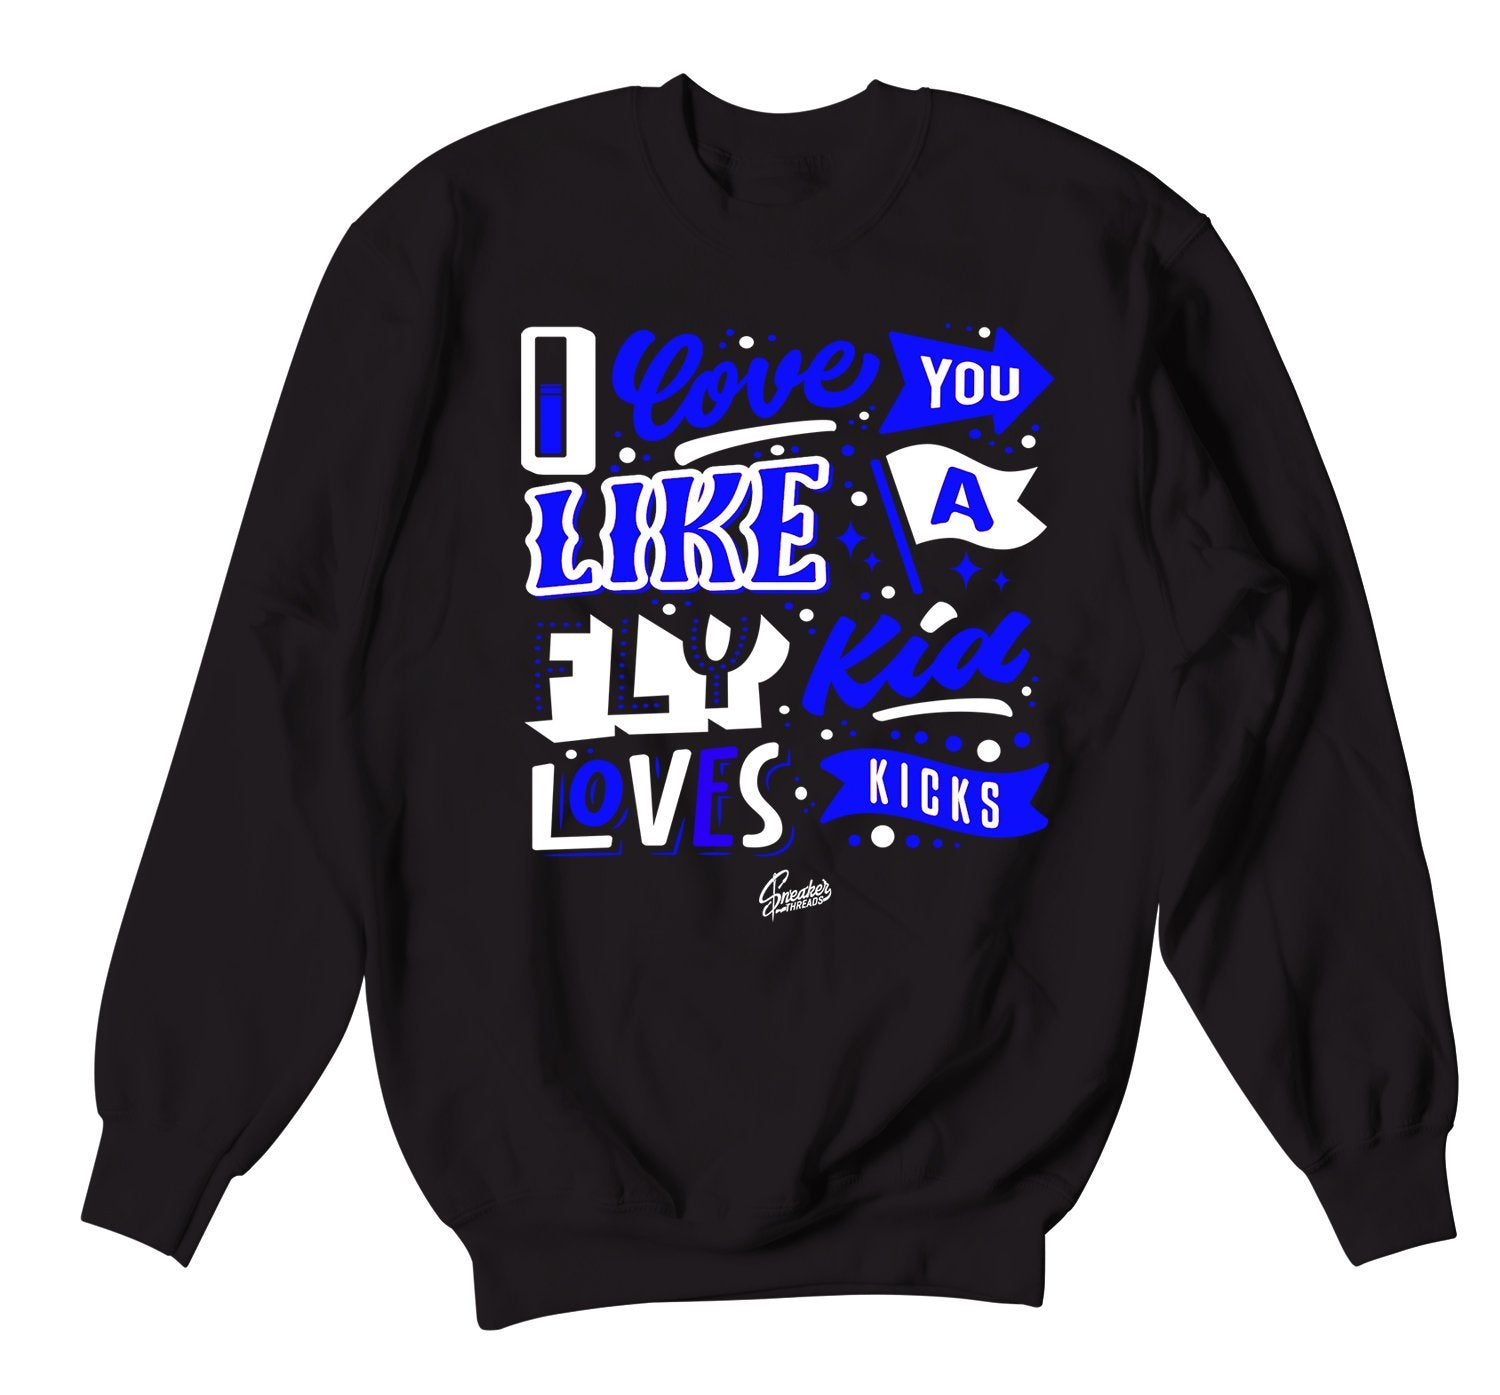 sweater collection designed for men designed to match Jordan 9 racer blue retro sneakers